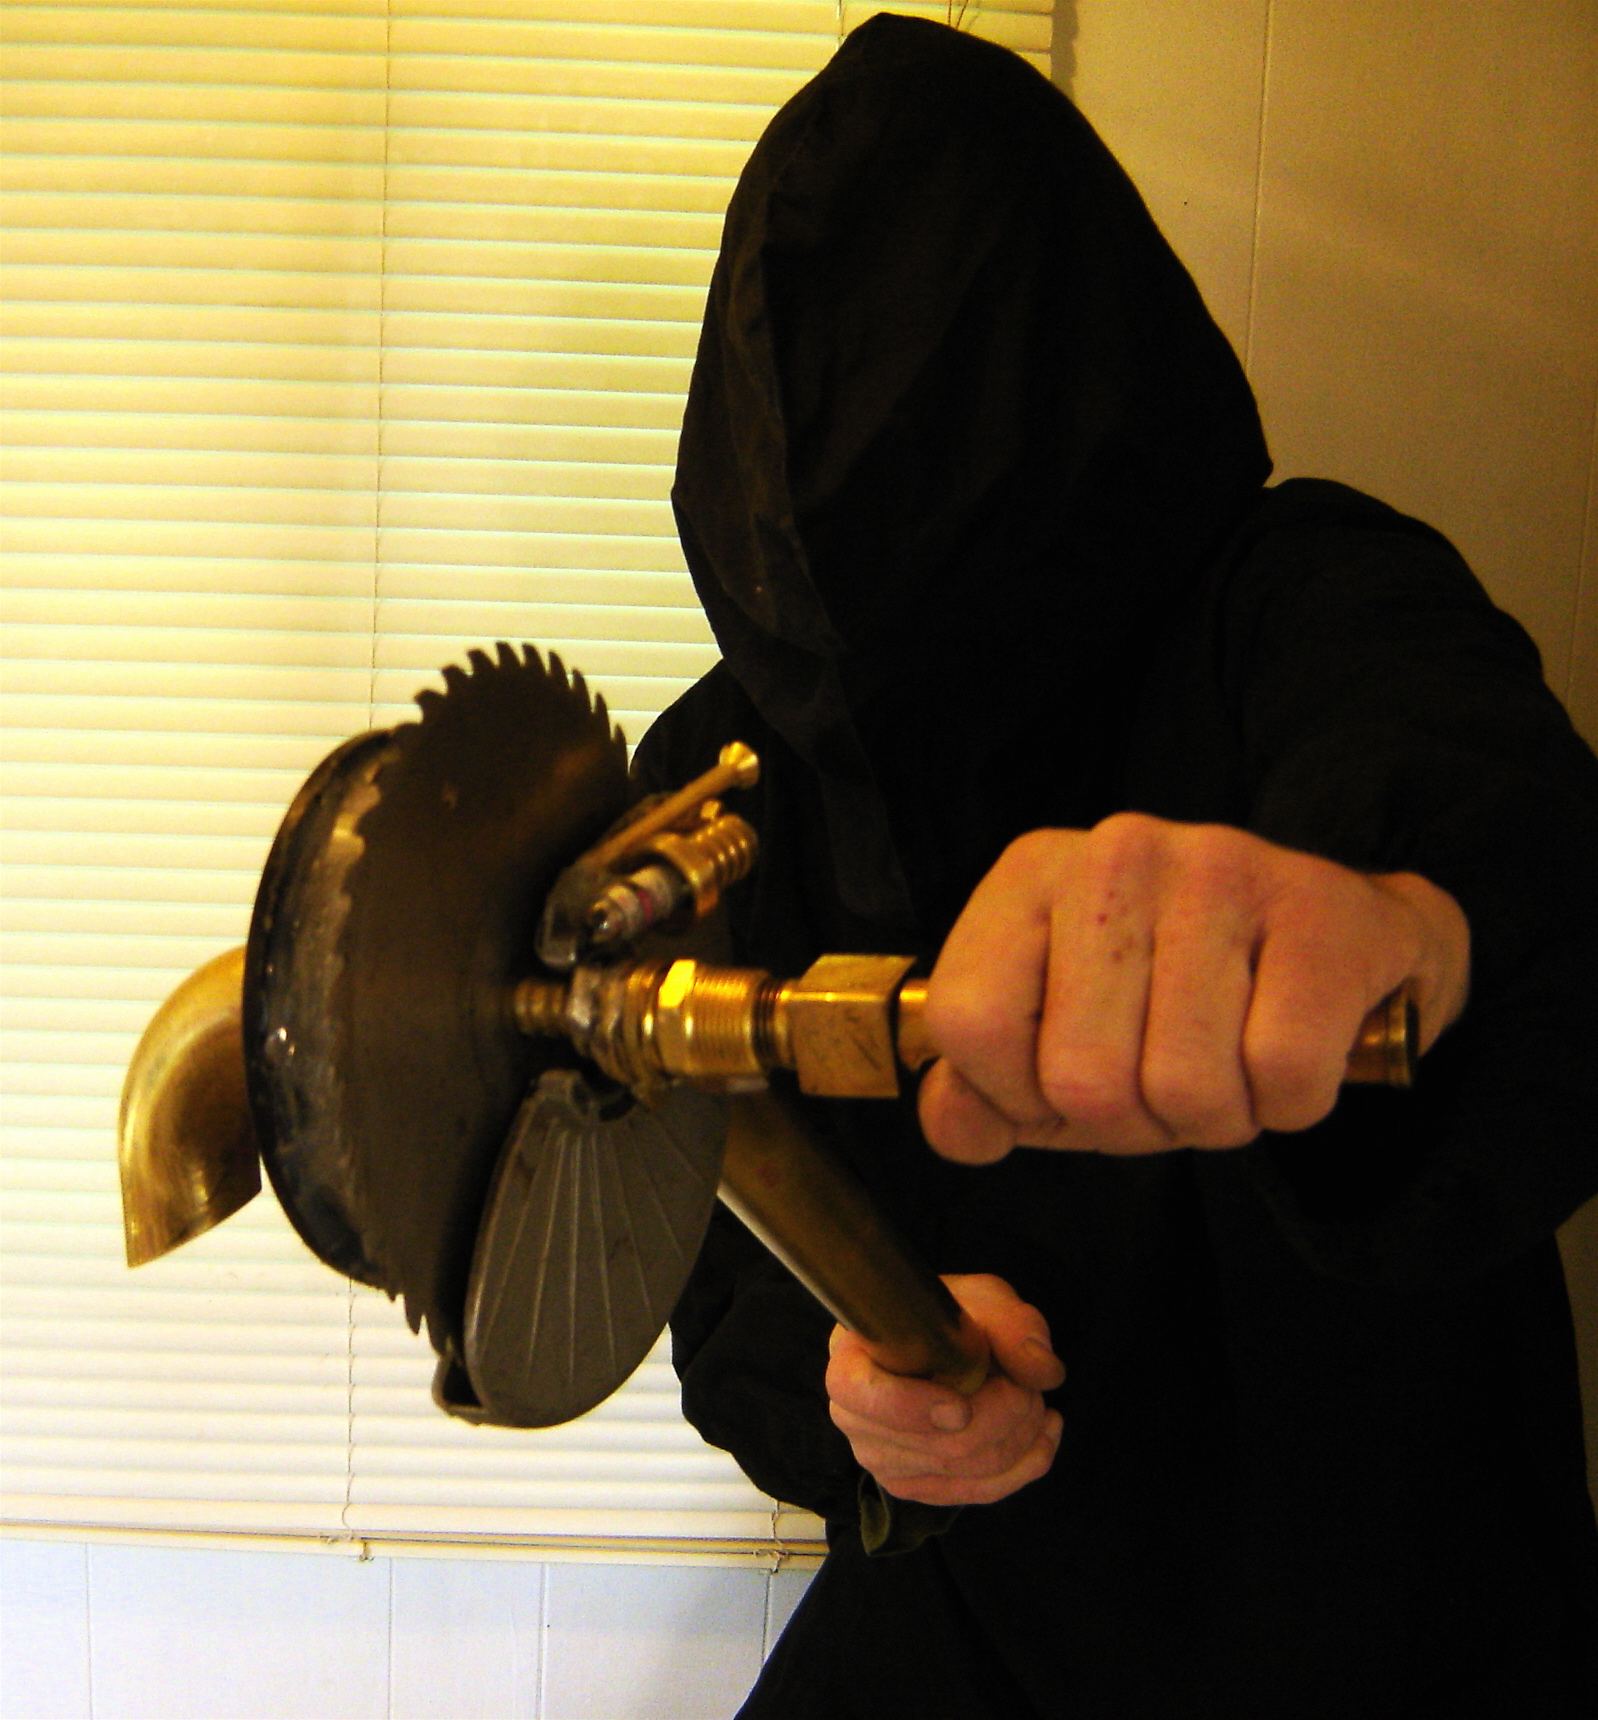 Tesla CD Turbine With Scary Steampunk Laser PumpkinCutter Attachment